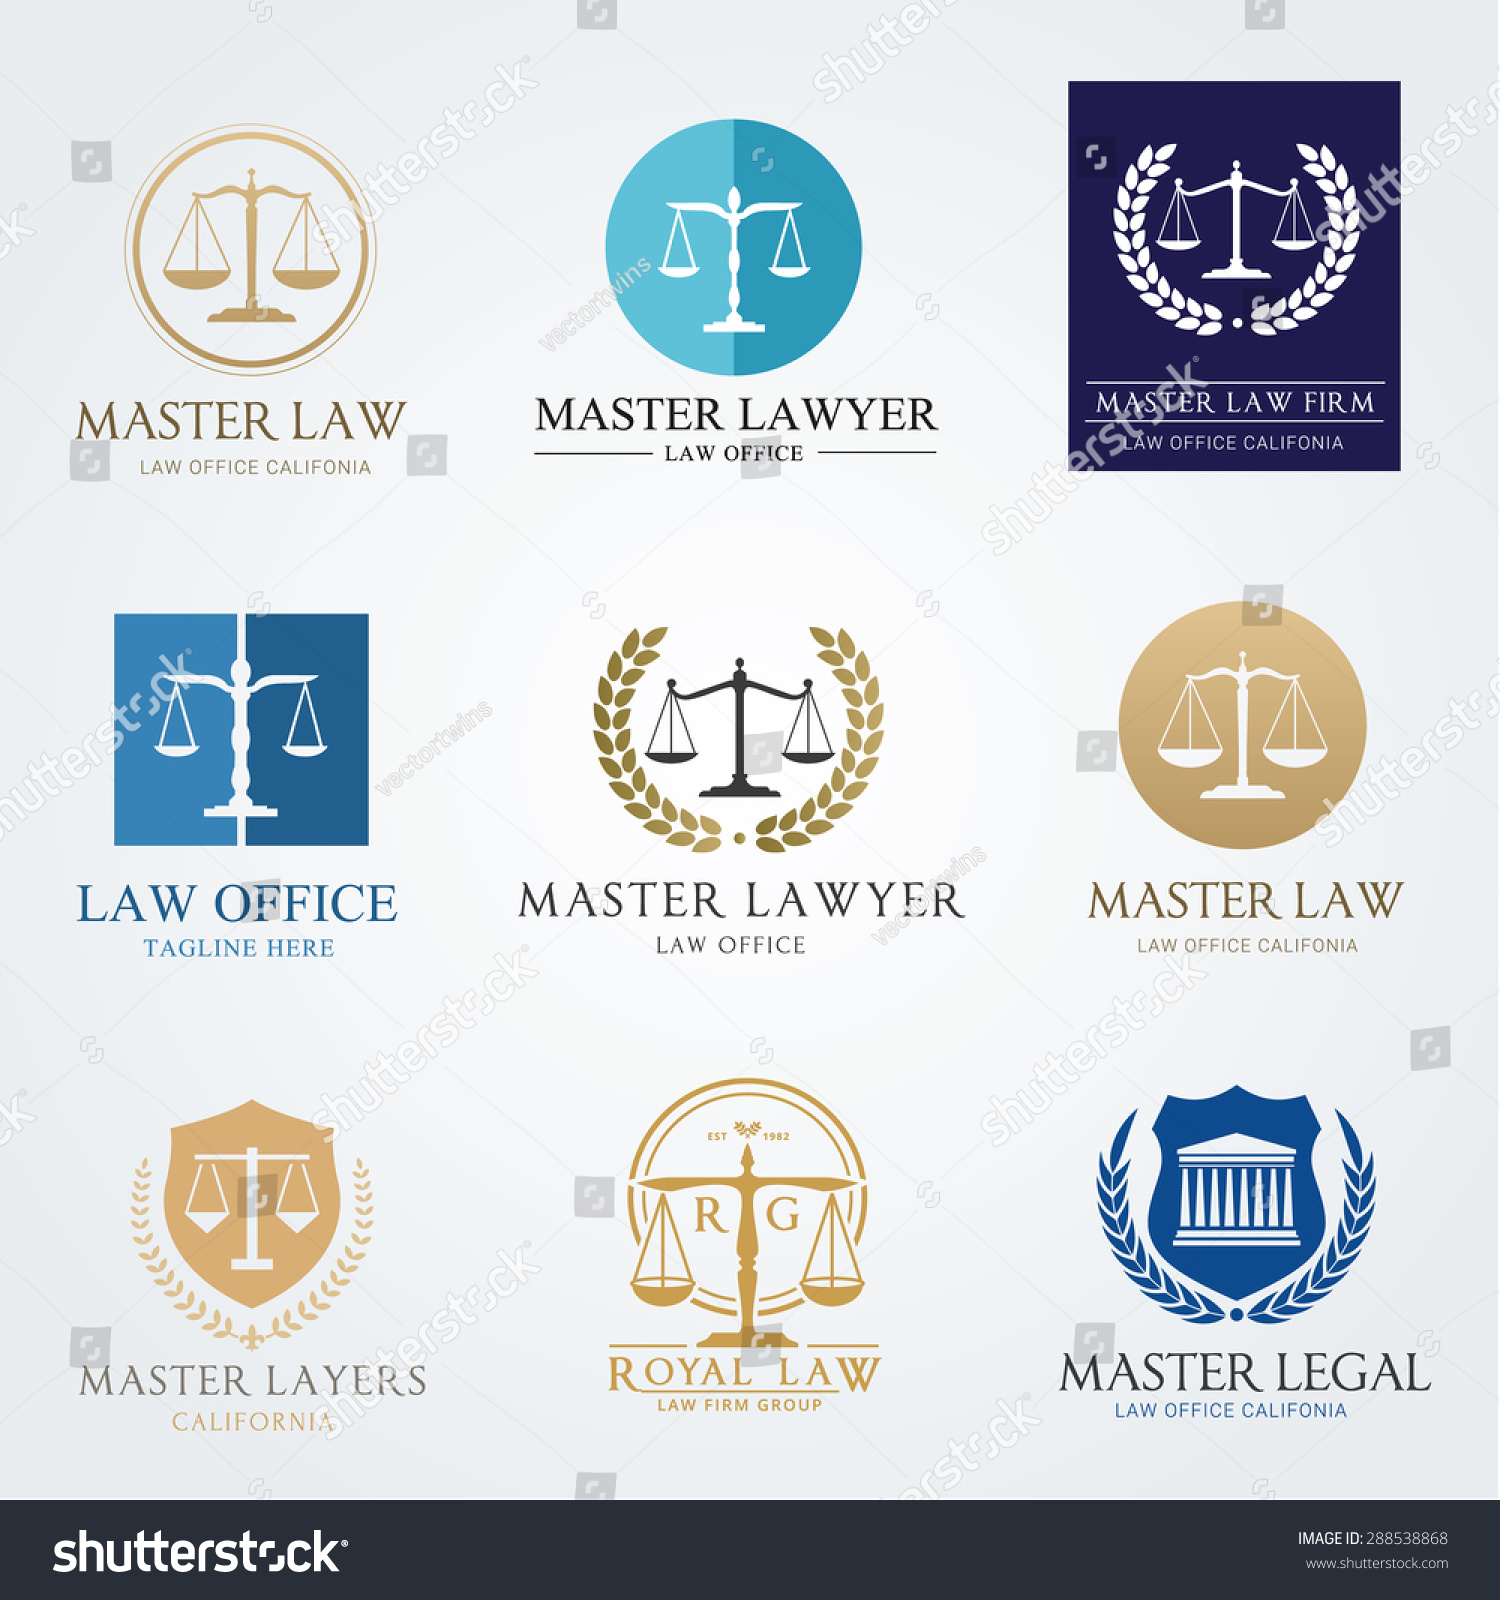 Law office logo collection The judge Law firm logo template lawyer set of vintage labels full vector logo and easy to edit able